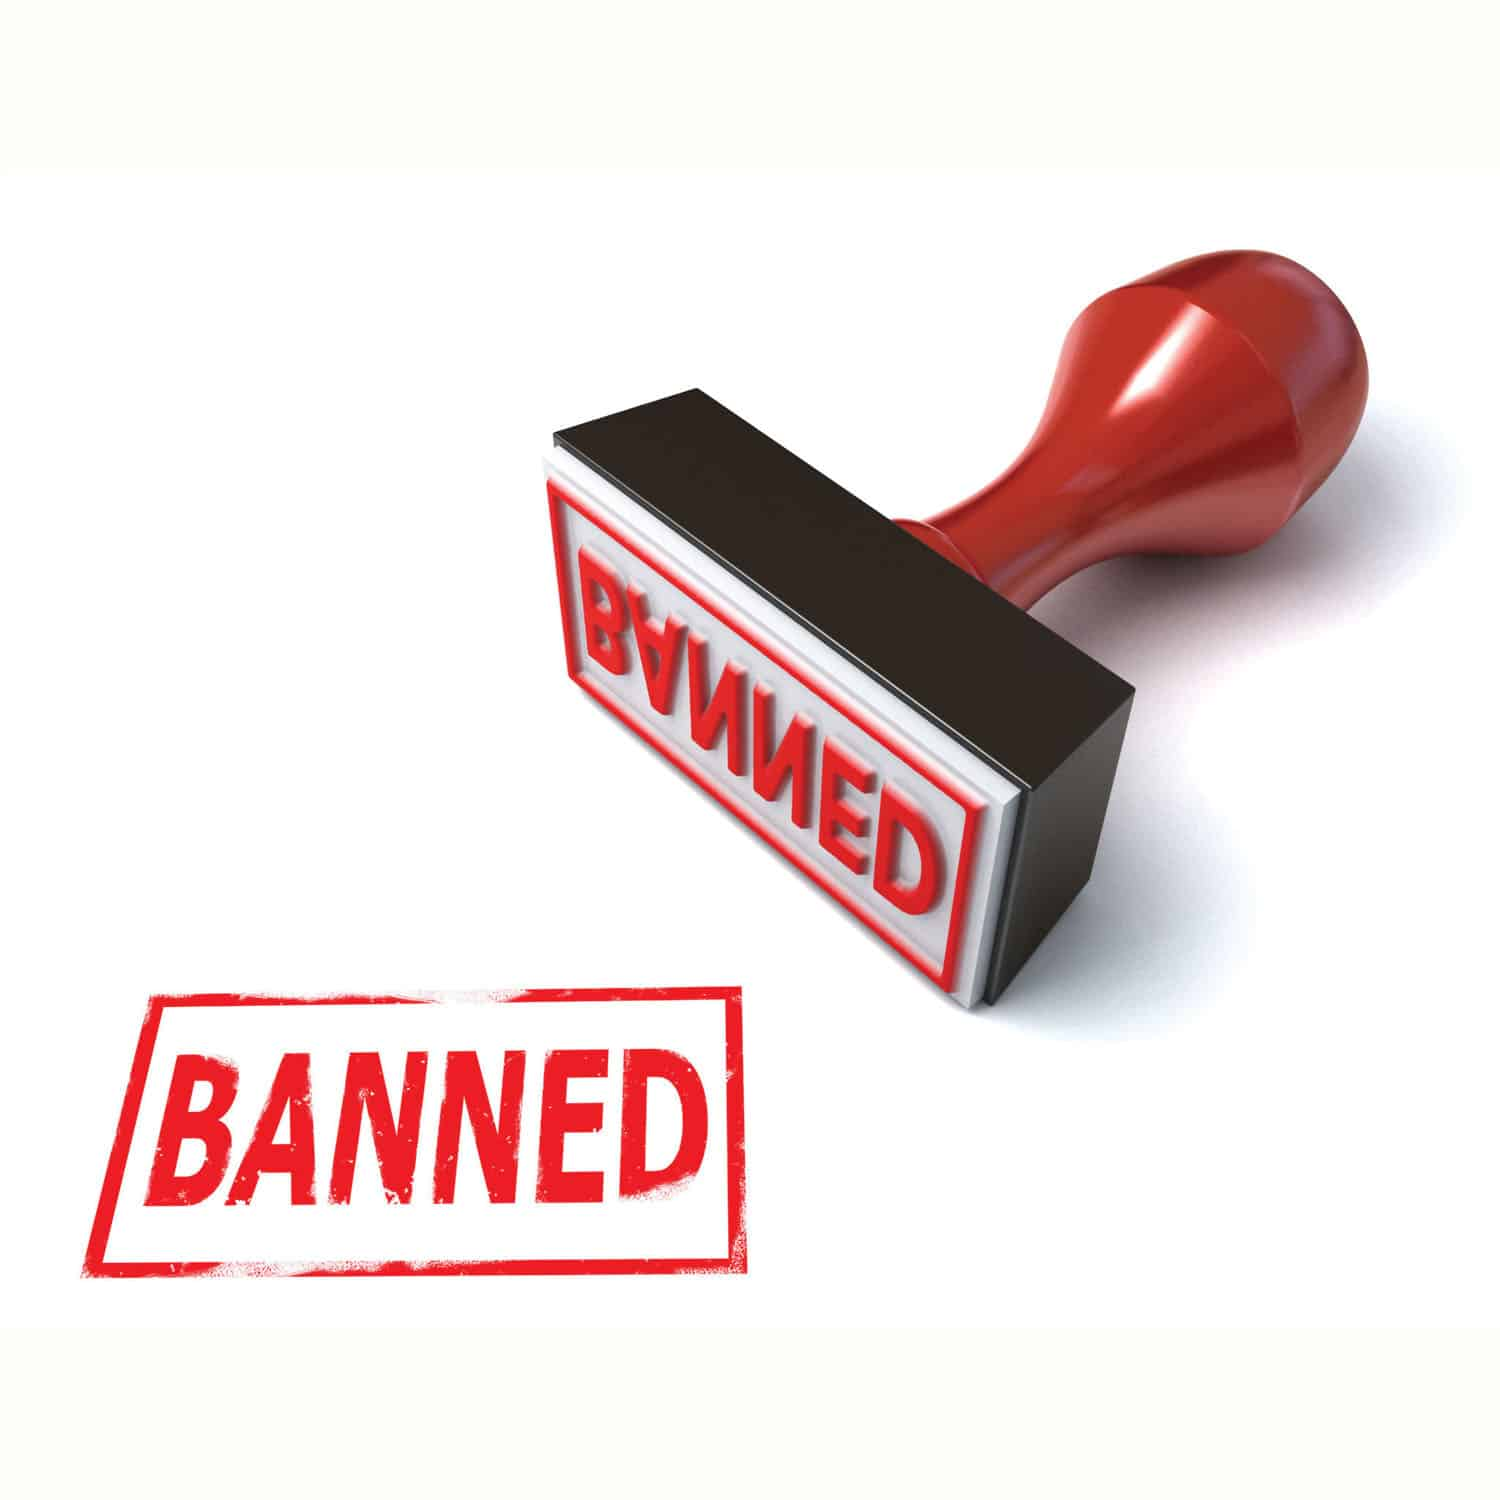 Banned photos fisting images 45